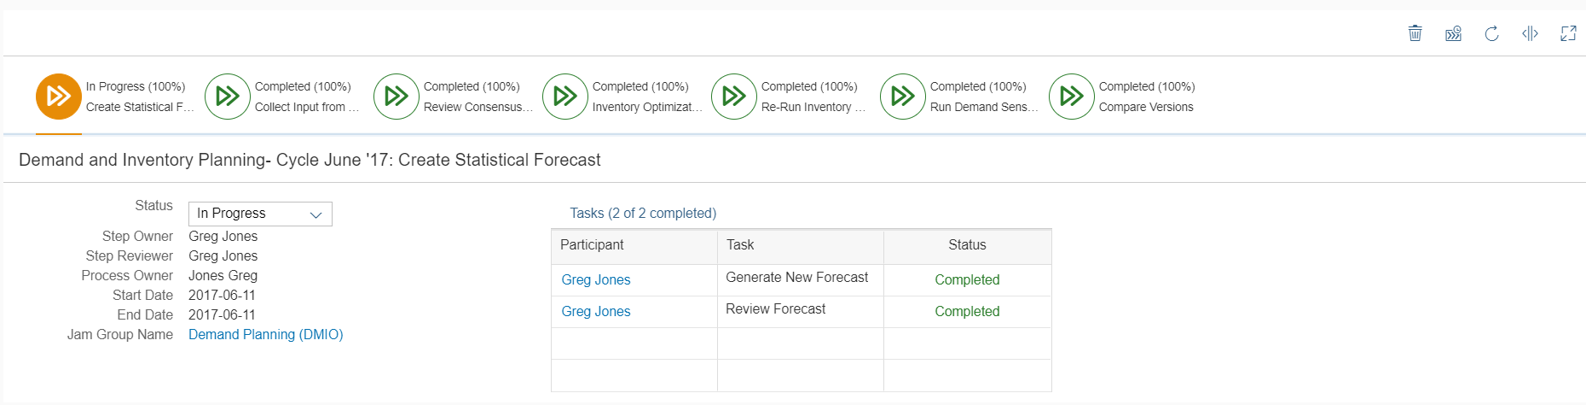 SAP Integrated Business Planning Reviews 2019: Details